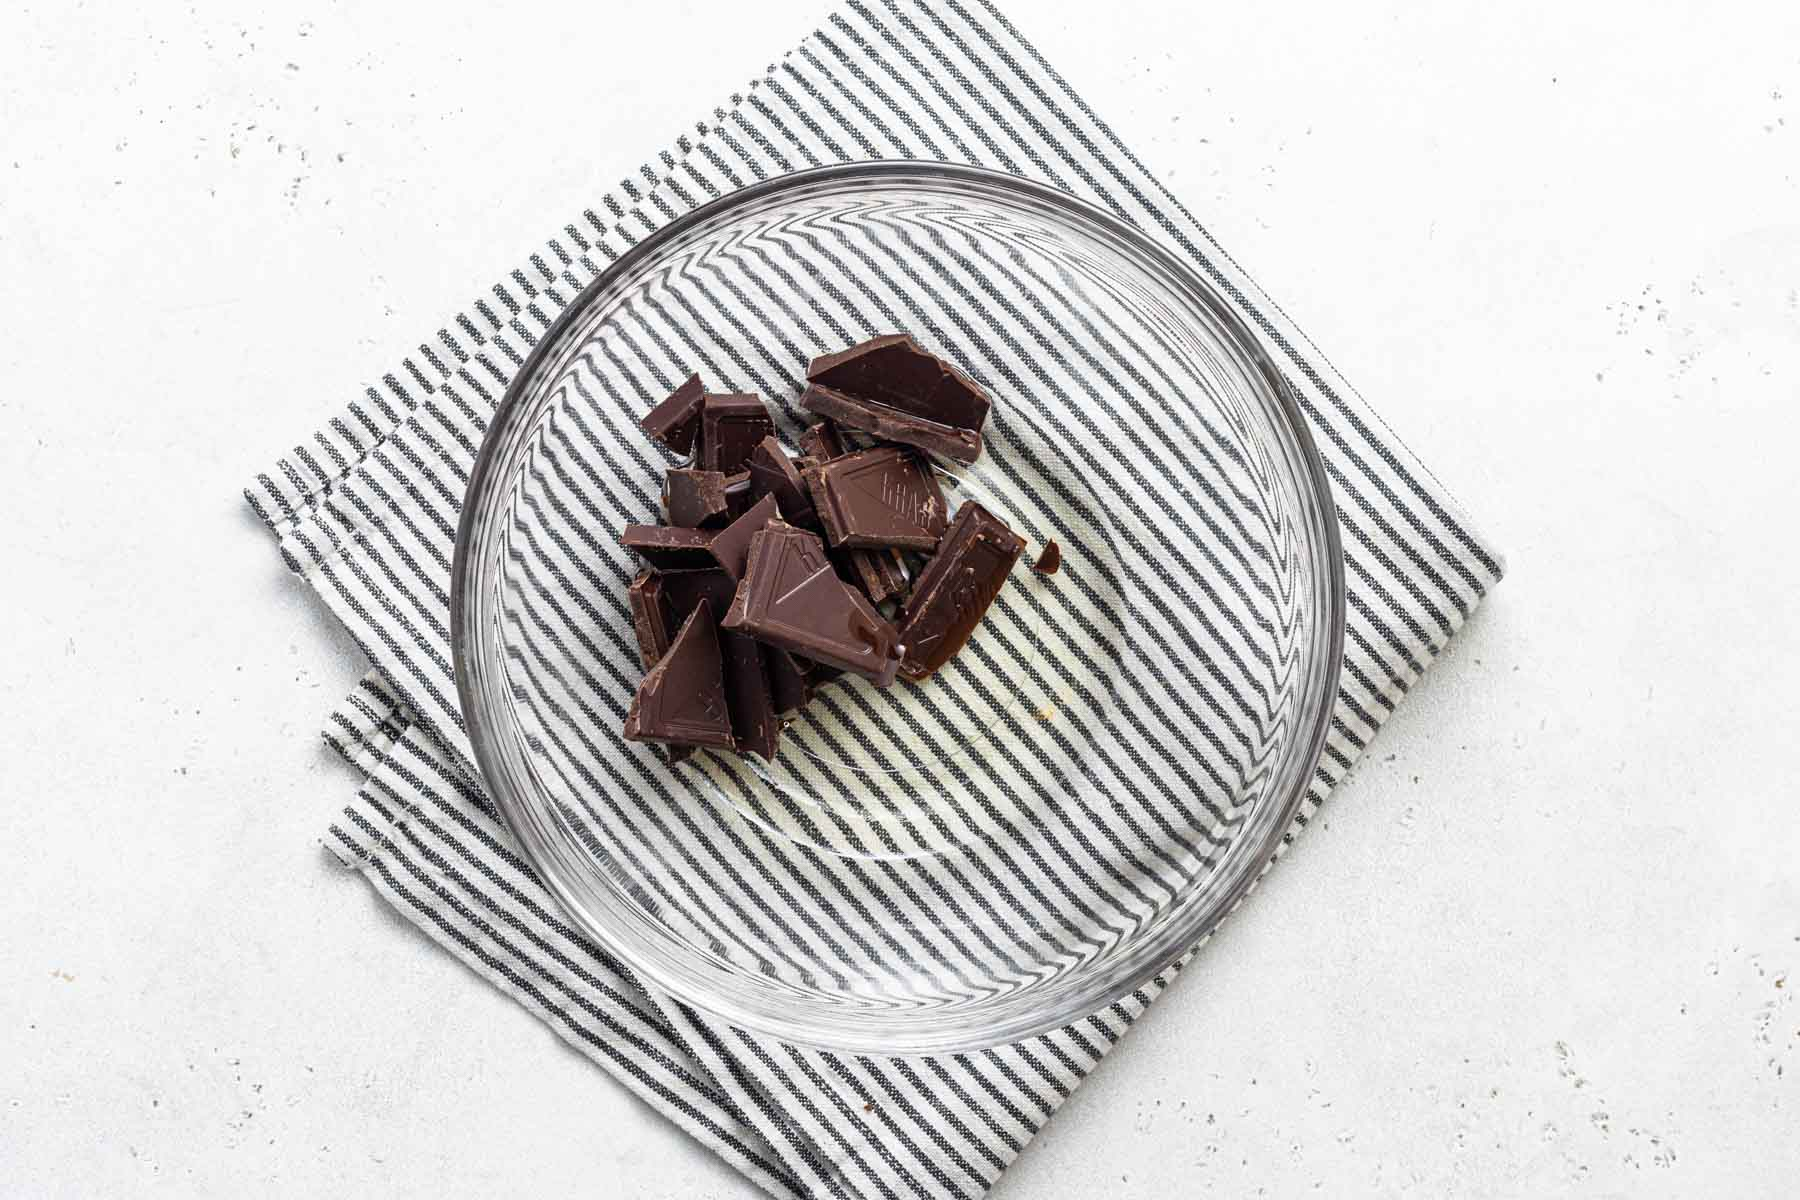 Chopped chocolate and oil in glass bowl.